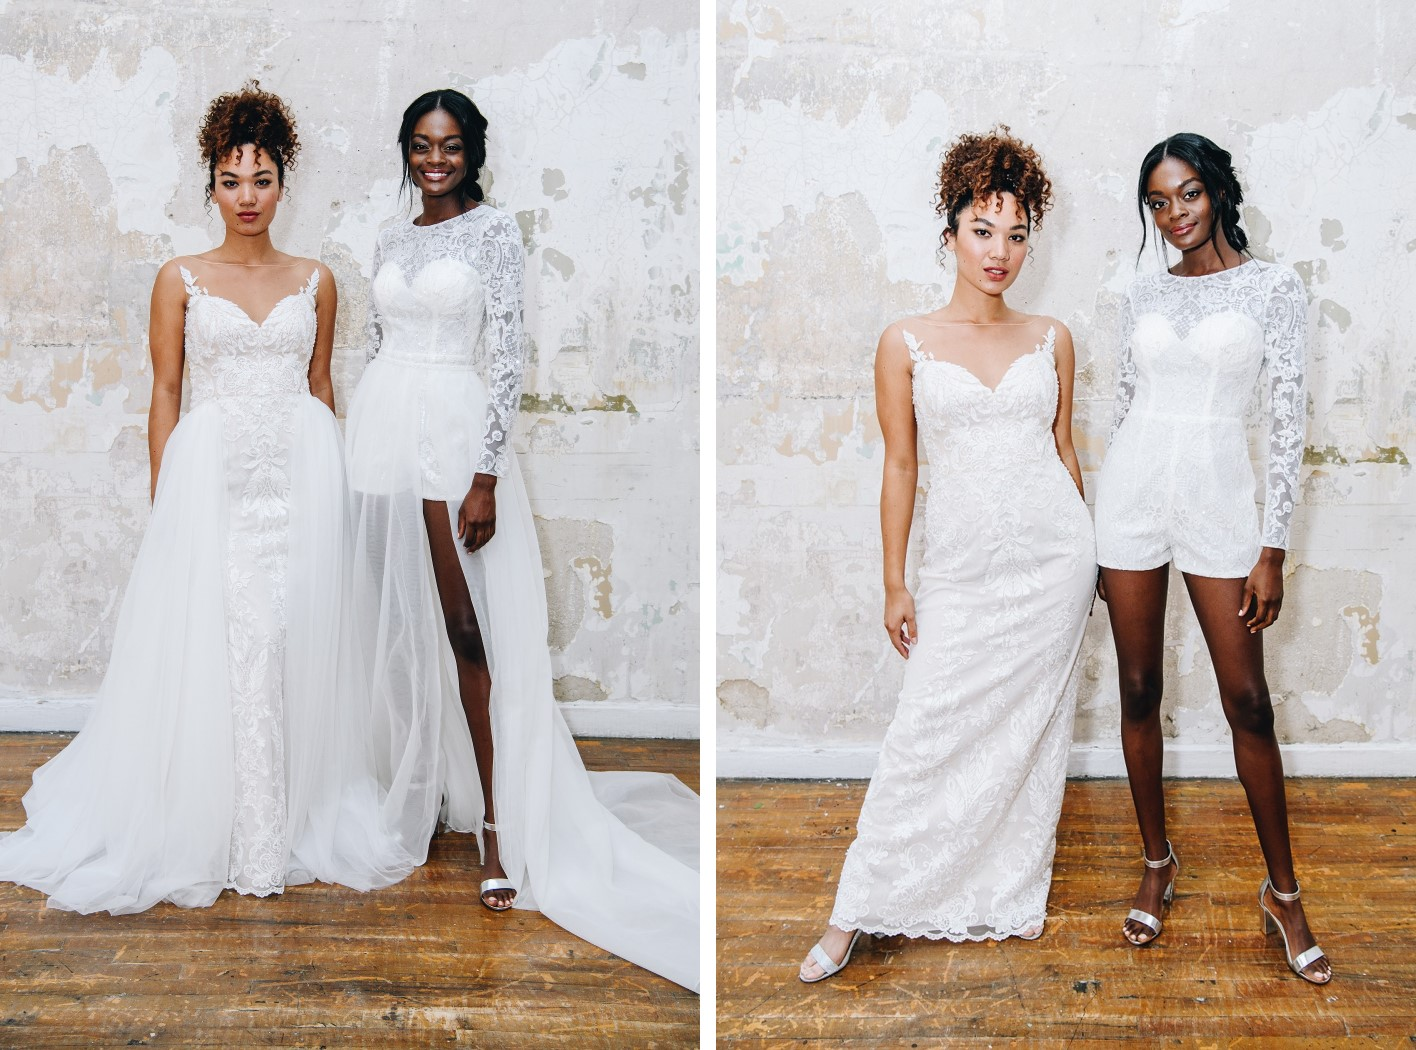 Brides in wedding dresses with removable skirts